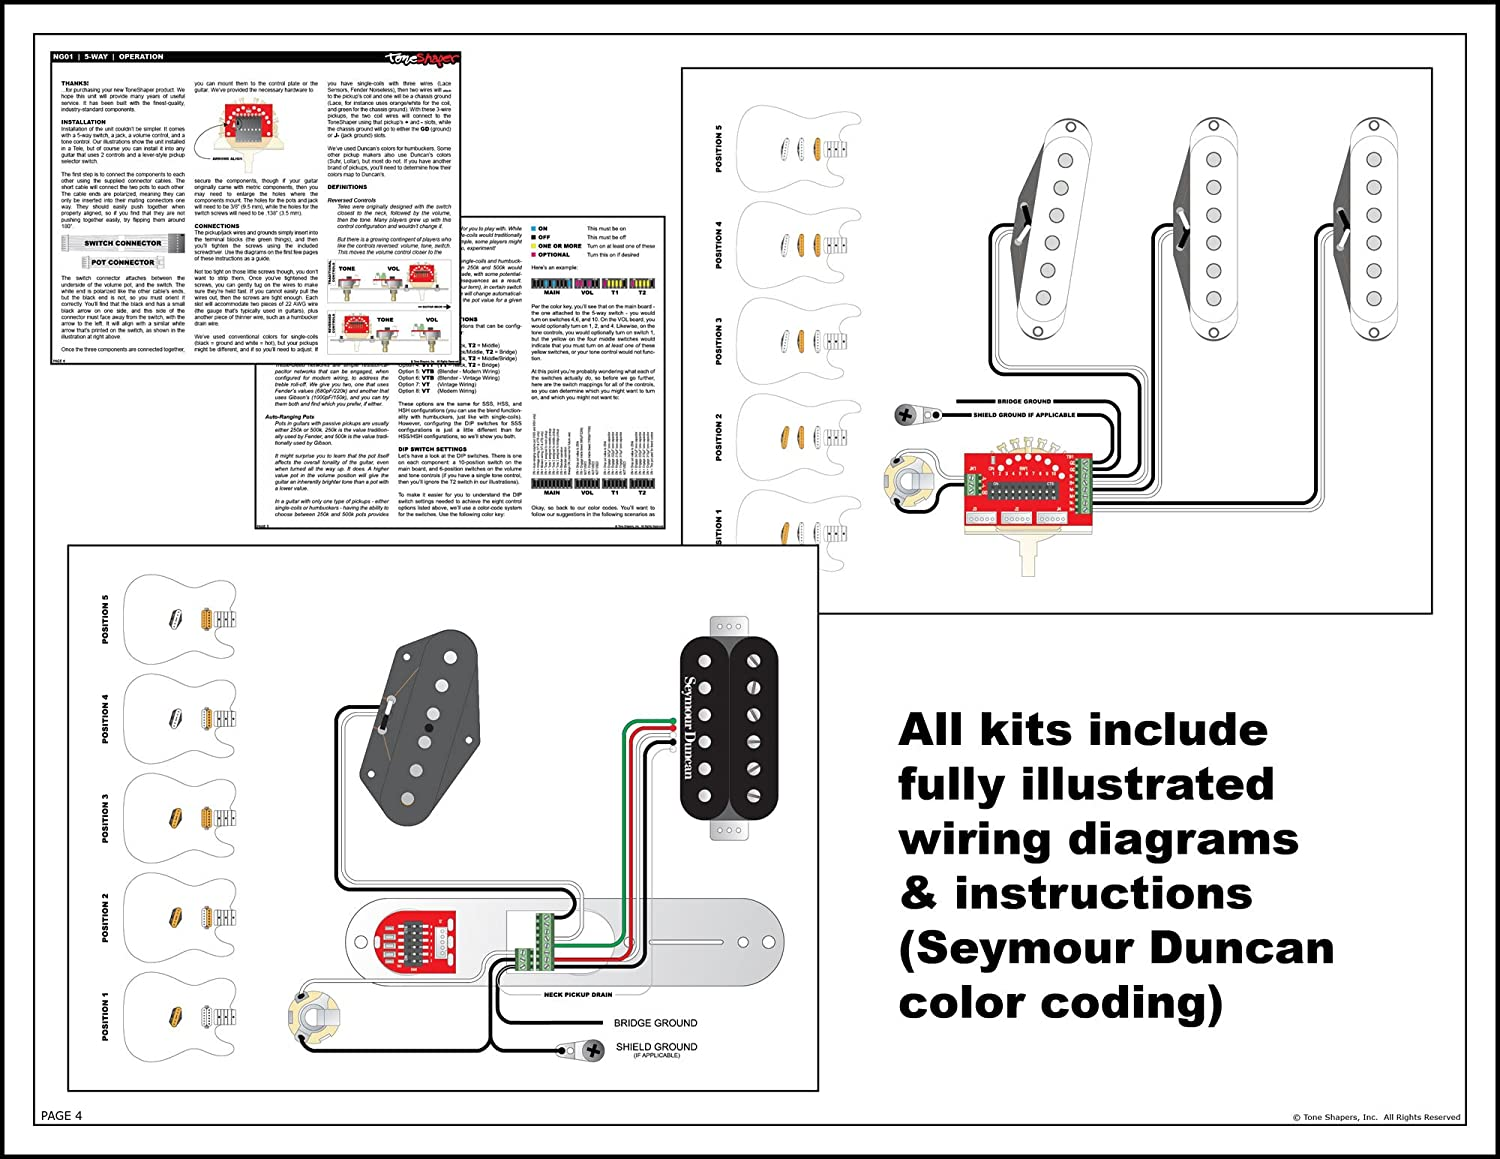 Wiring Diagram Hsh 5 Way Fender Switch Imgs Toneshaper Nextgen Kit Solder Free Ng03 Strat Many Other Guitars 2 Or 3 Controls Musical Instruments